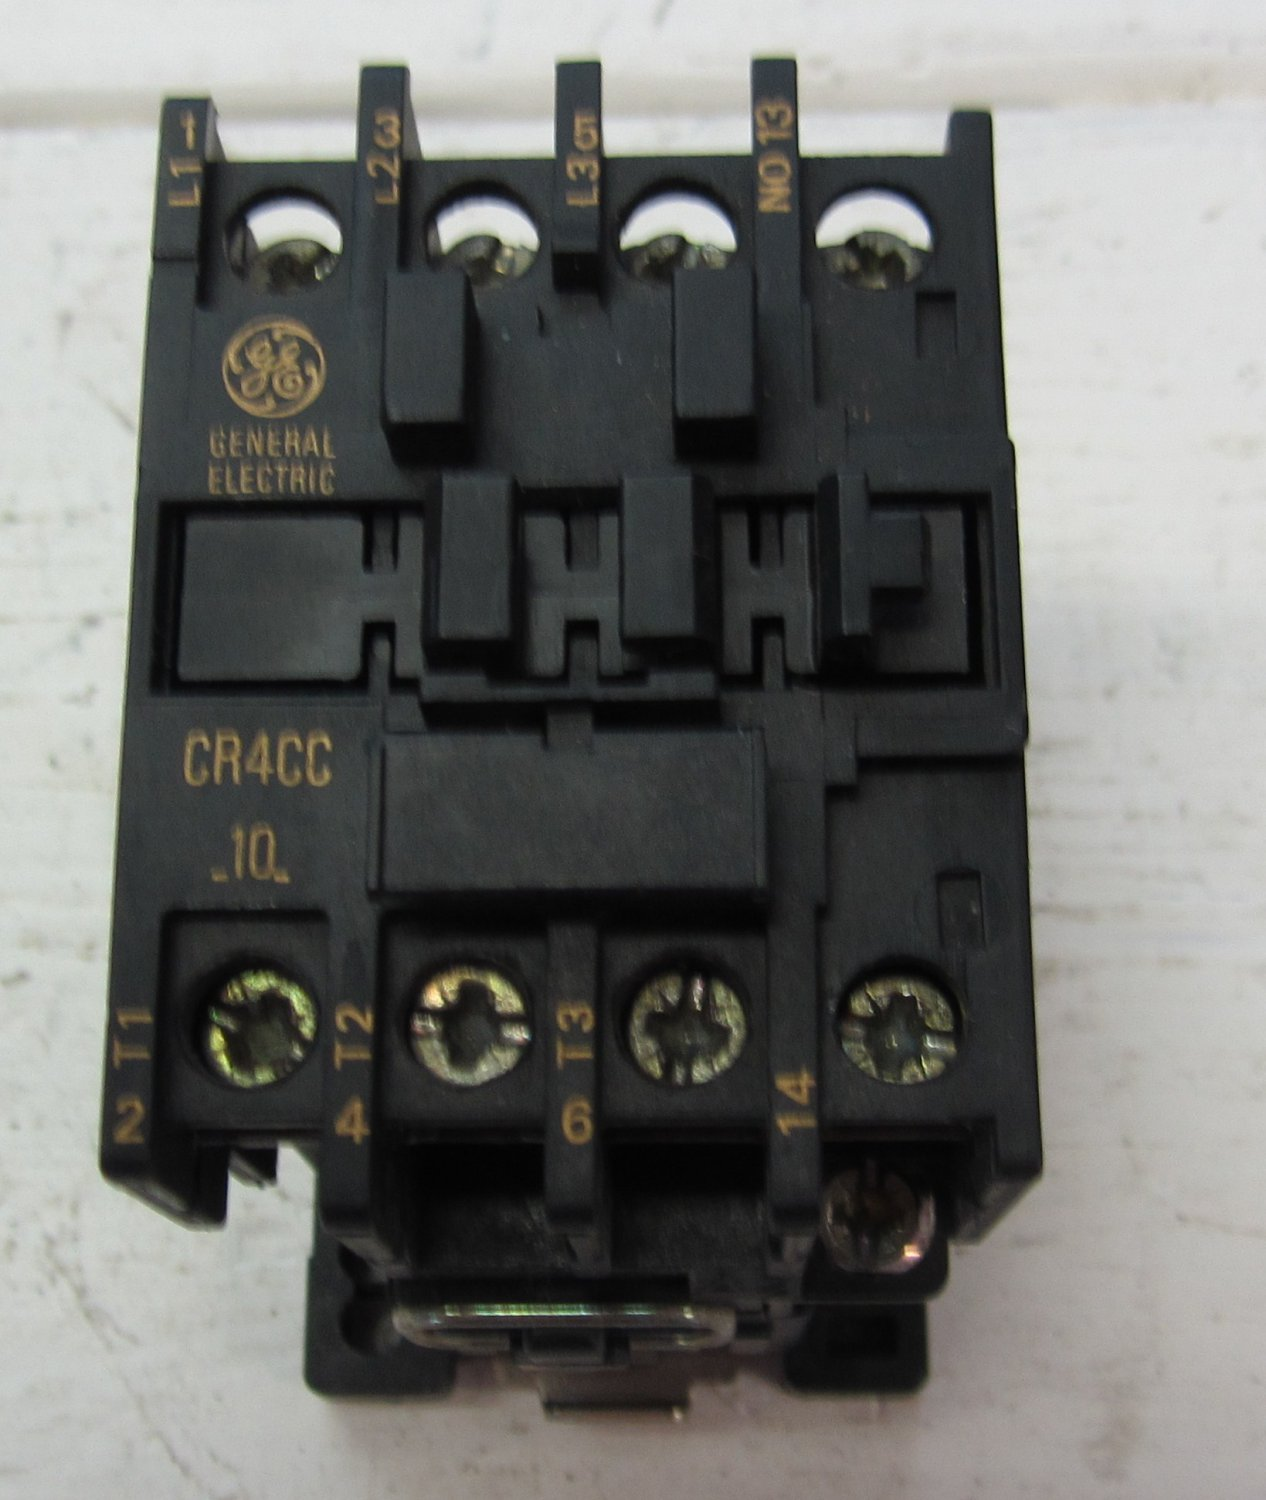 General electric cr4cc 10 cr4cc motor starter contactor for 3 hp motor starter